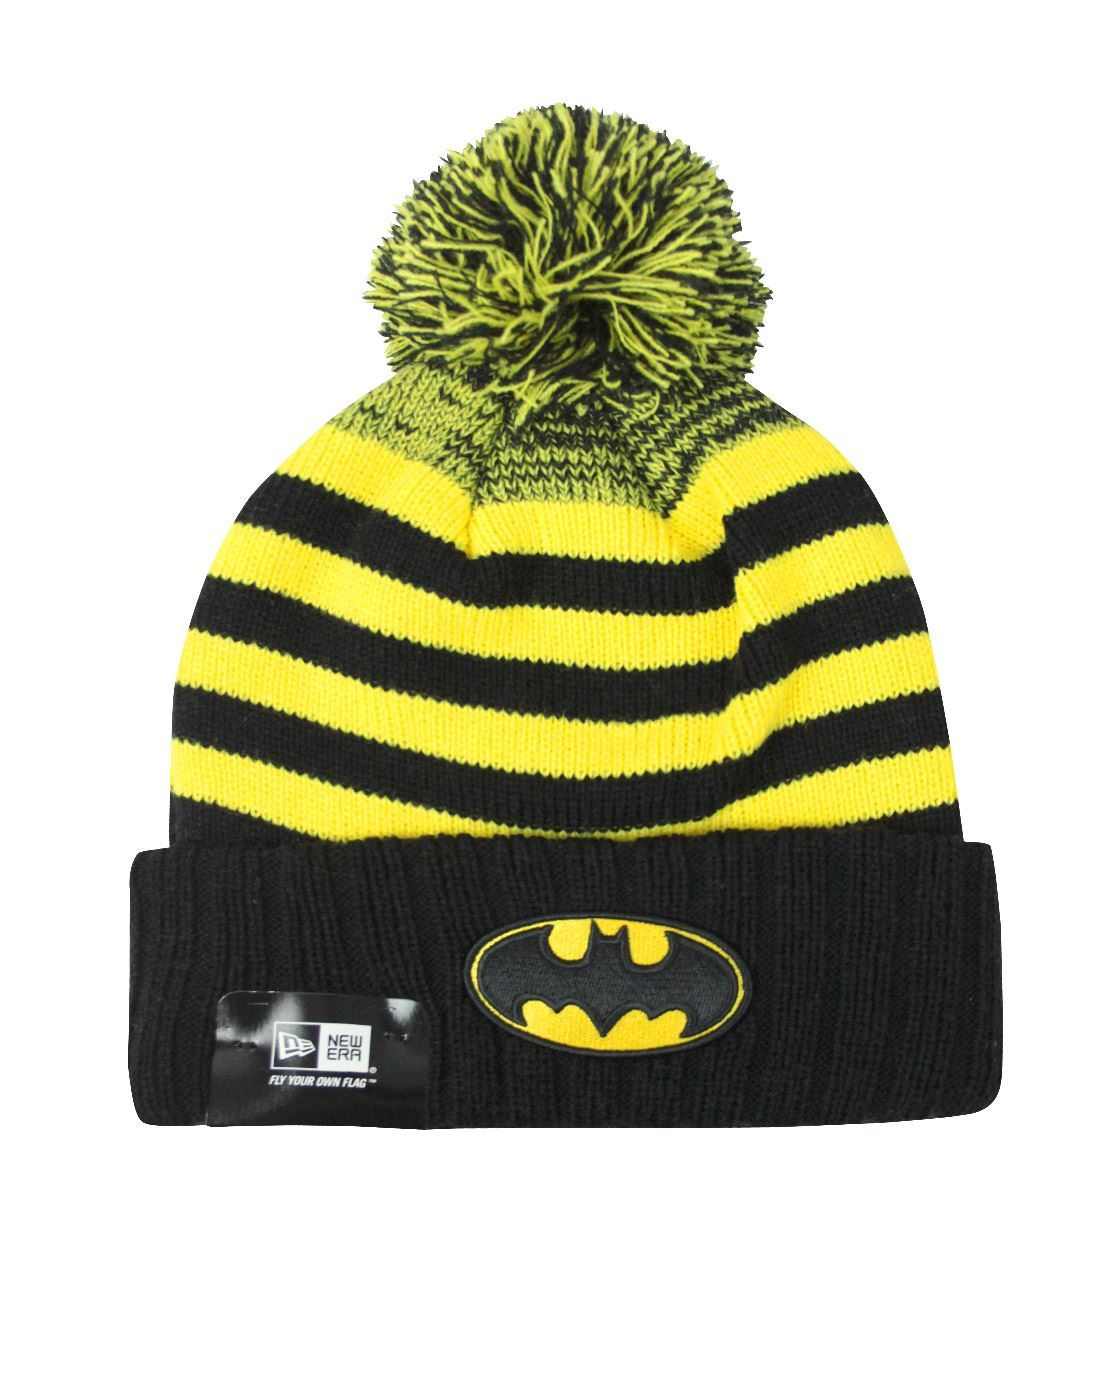 New Era Batman Snowfall Striped Knit Hat – Vanilla Underground dff919e4b61